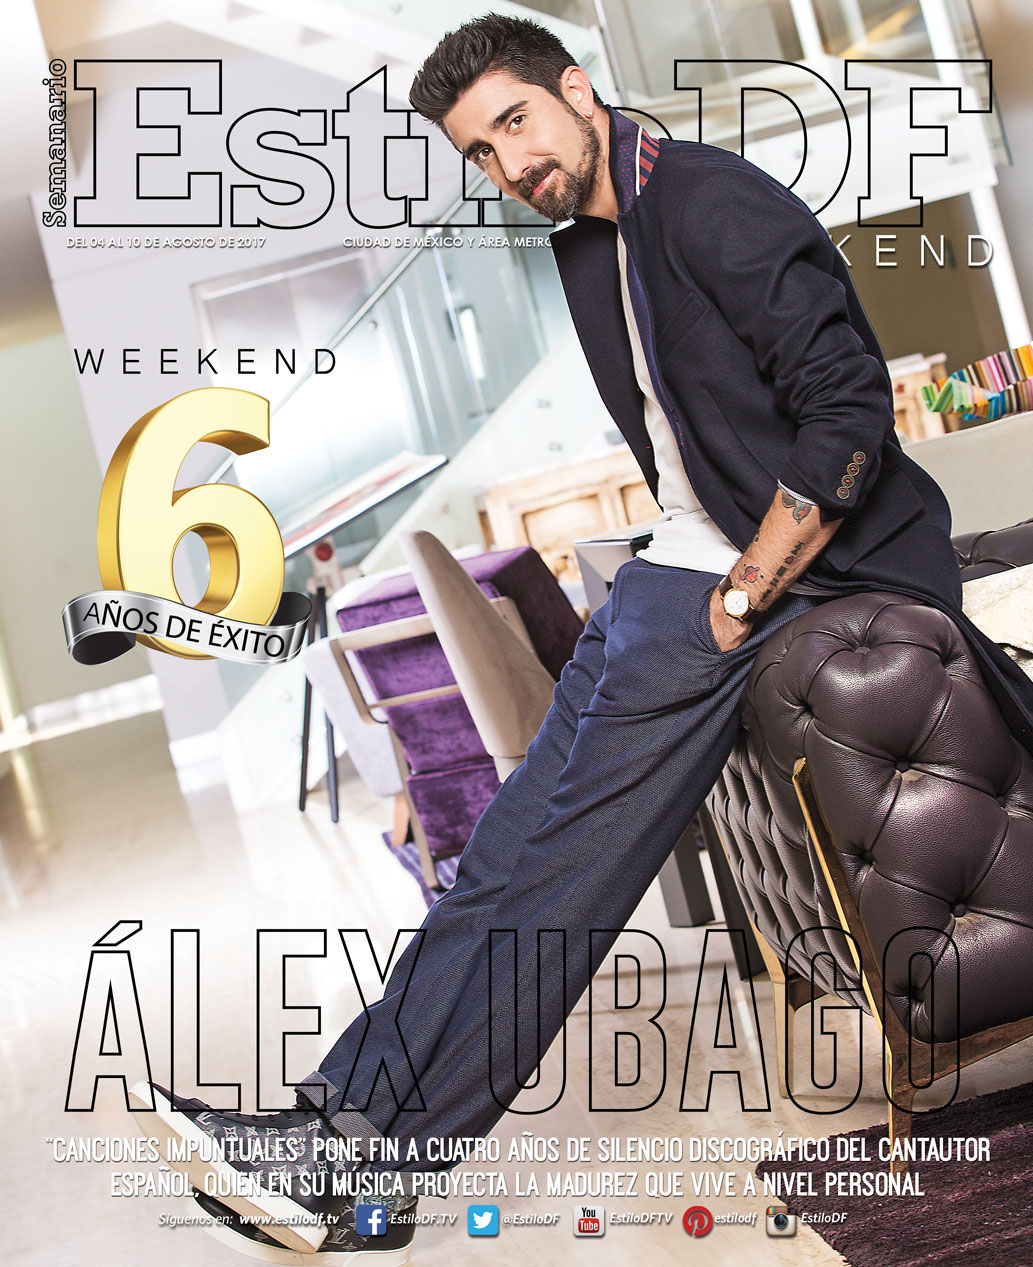 Portada-Web-Alex-Ubago-6-años-Weekend